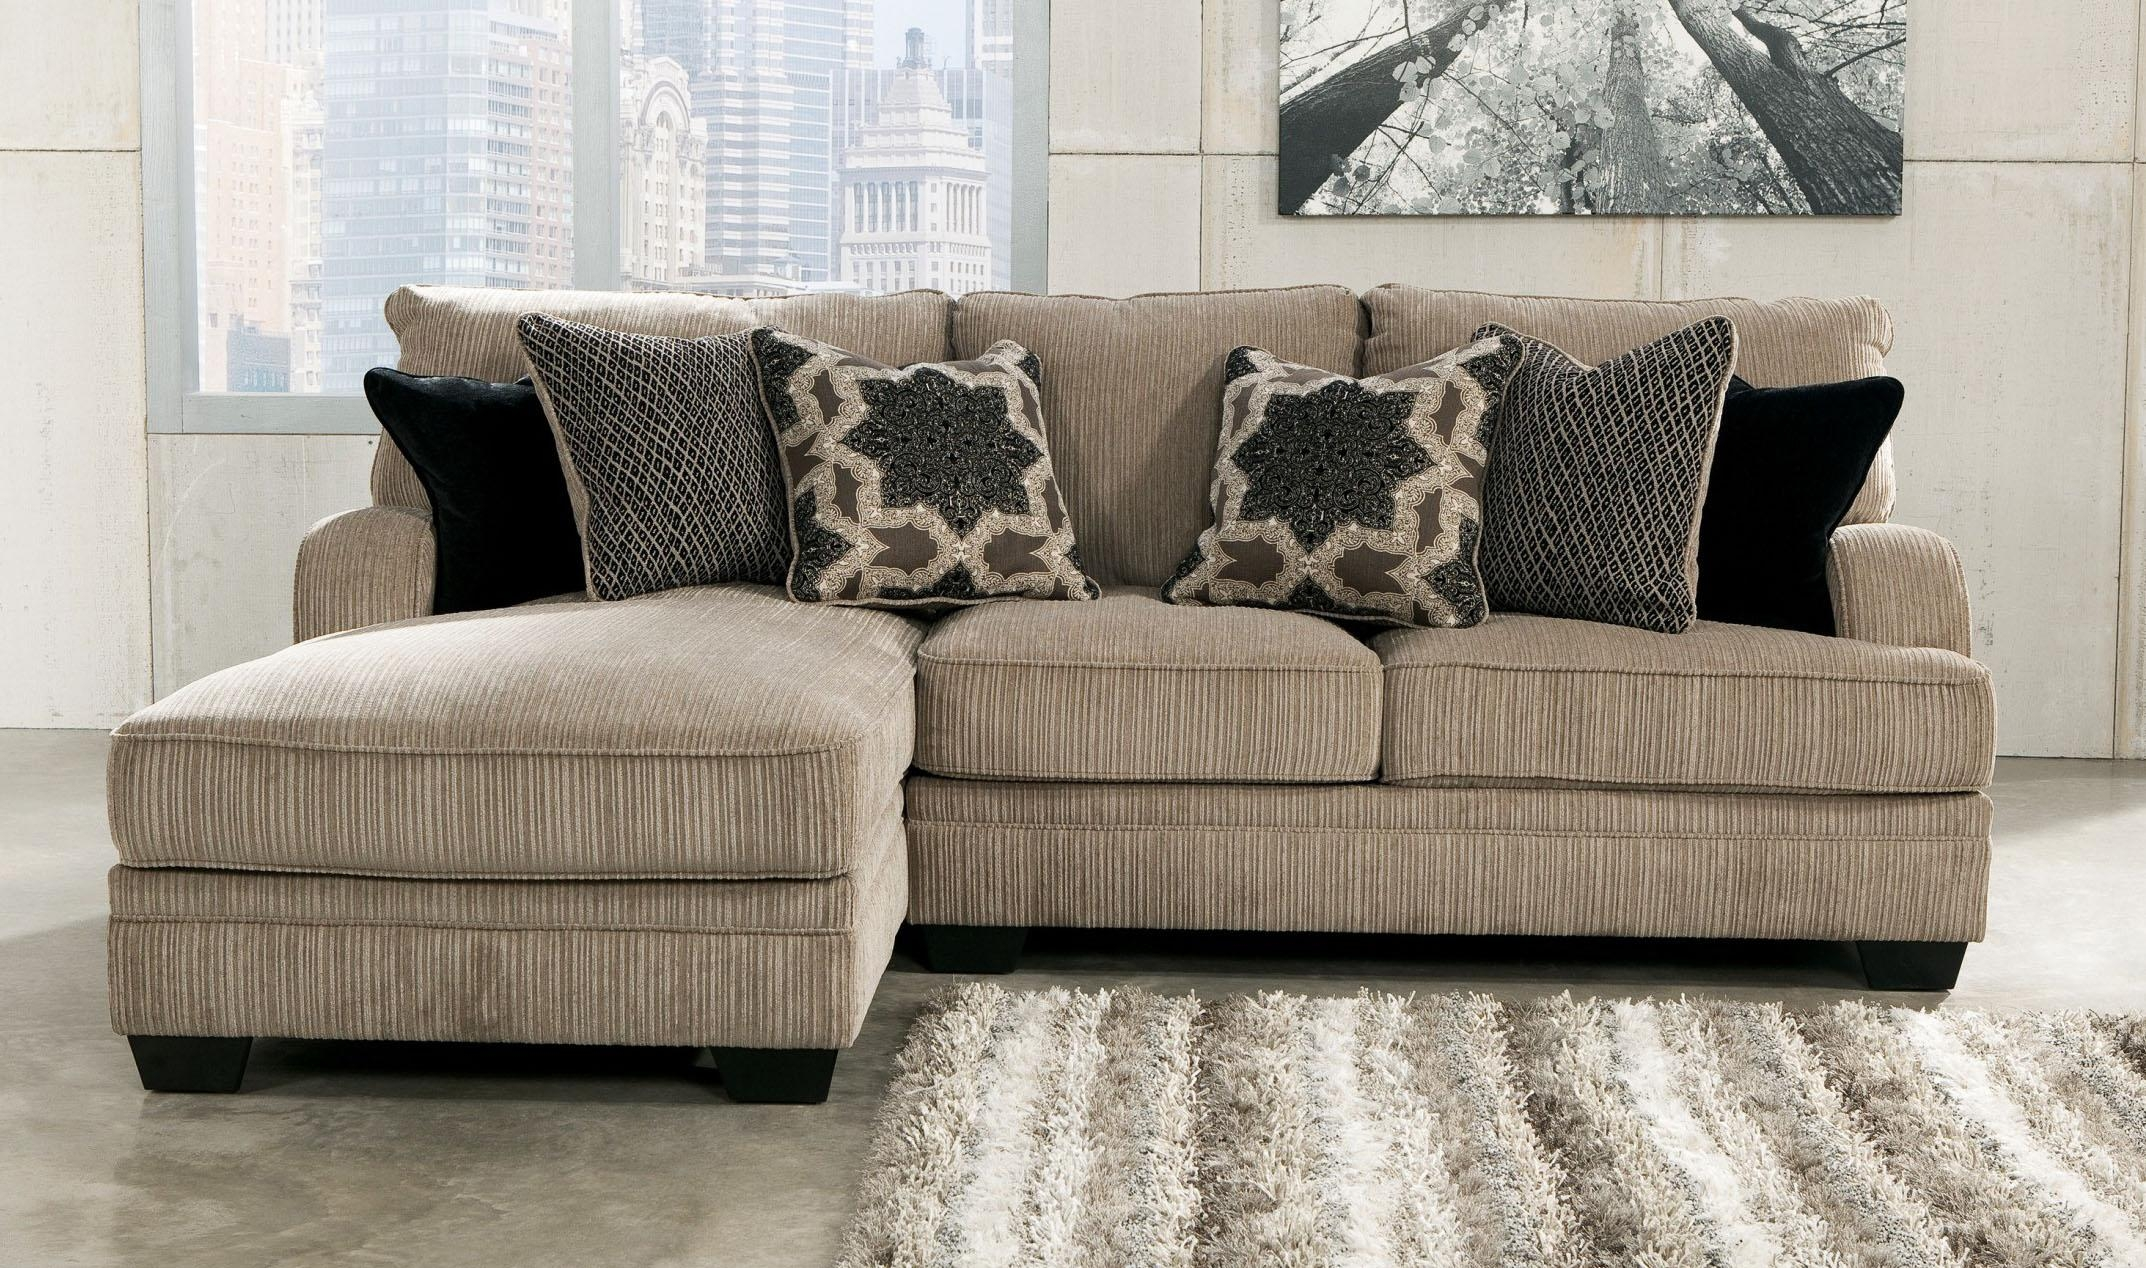 Contemporary Sectional Sofas For Small Spaces Charming Small Scale Within Small Scale Sofas (View 5 of 20)